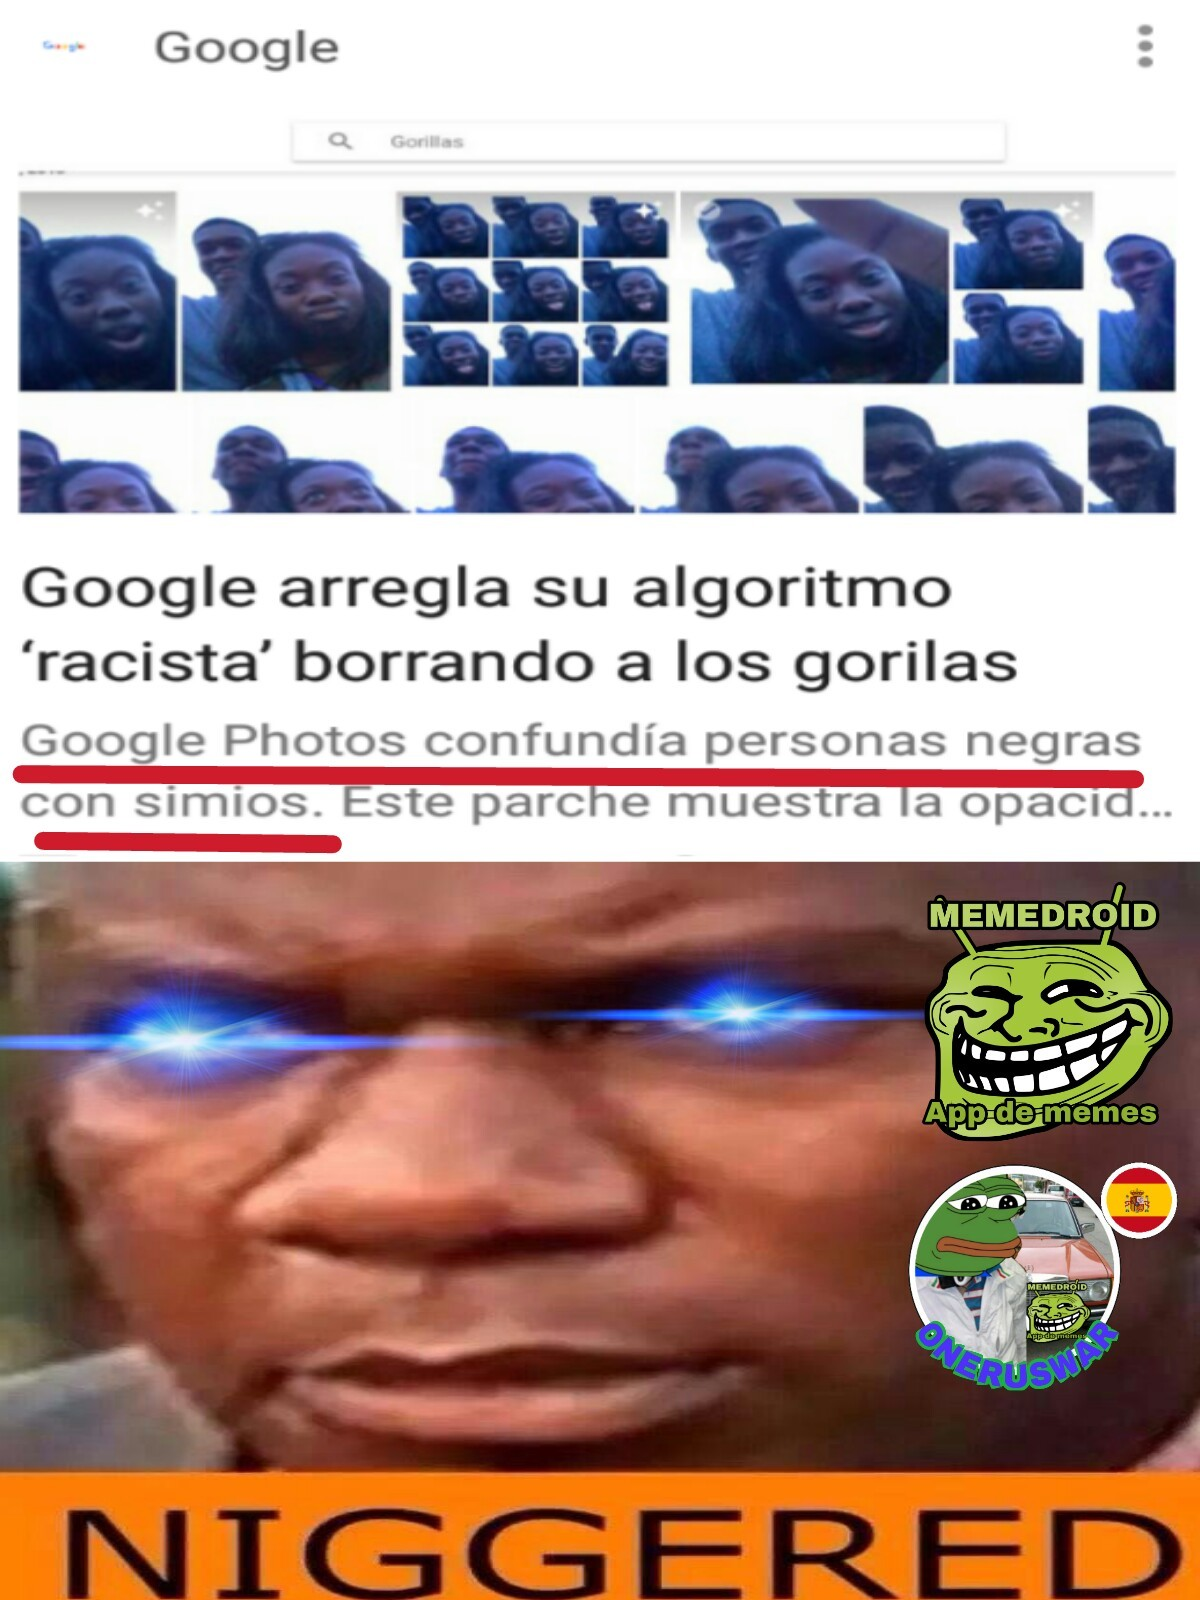 Google no seas racista - meme